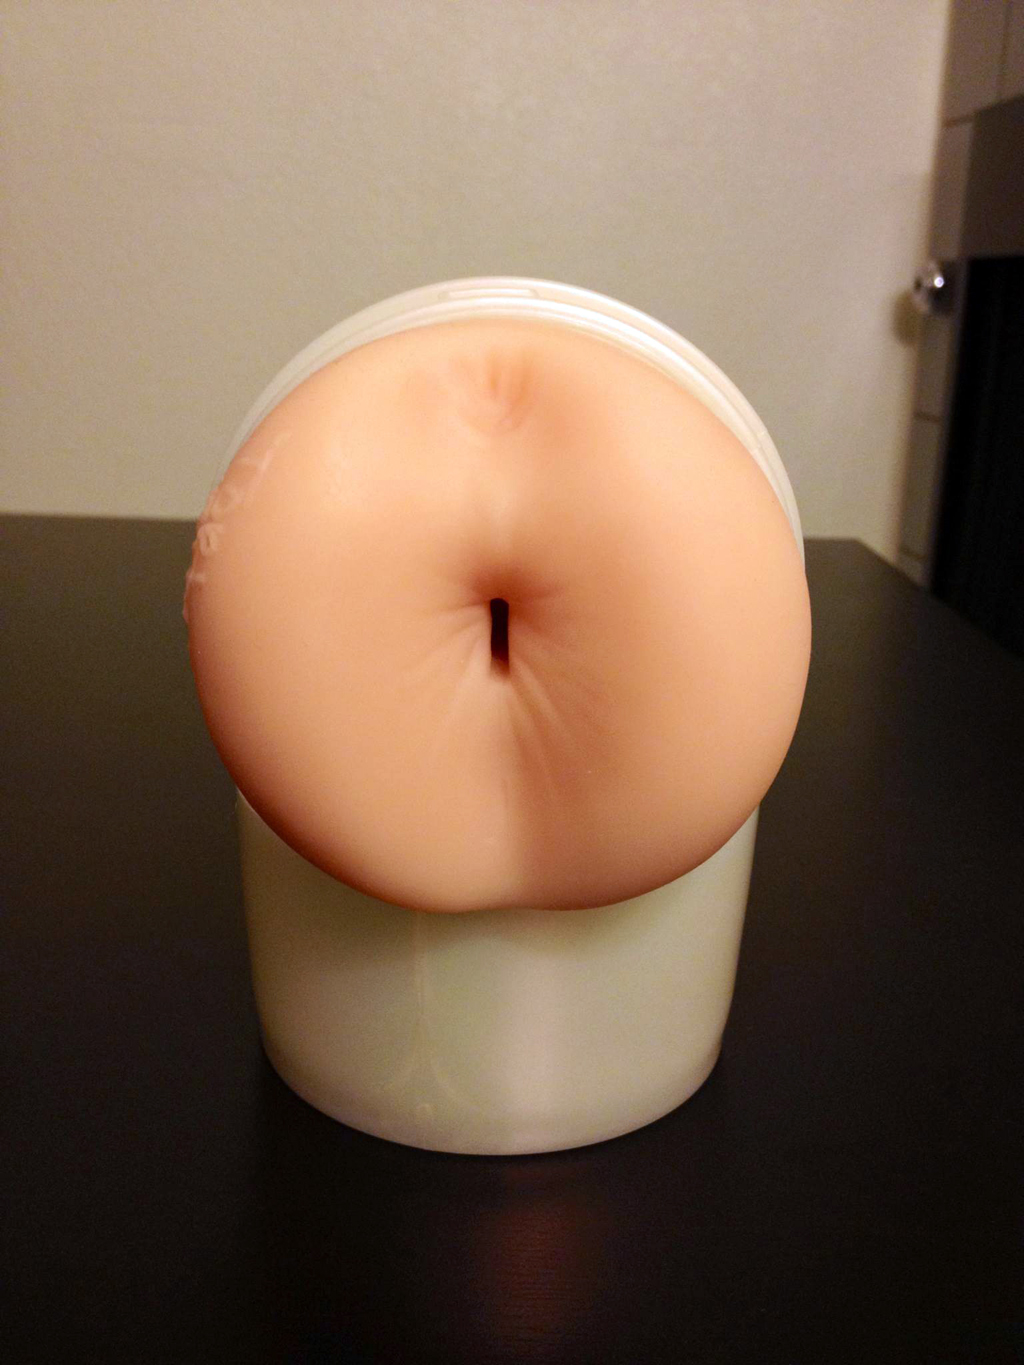 soft porno fleshlight vagina